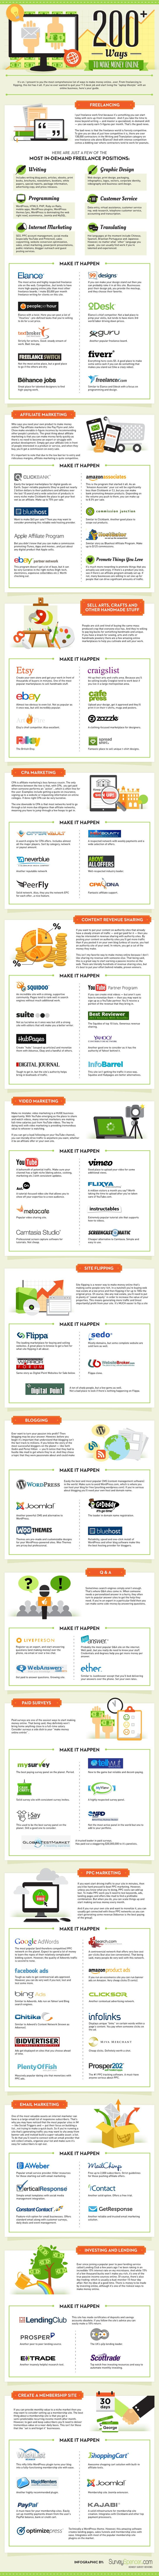 If you've decided you have what it takes to be a freelancer, and are willing to take the plunge, this infograph is for you.